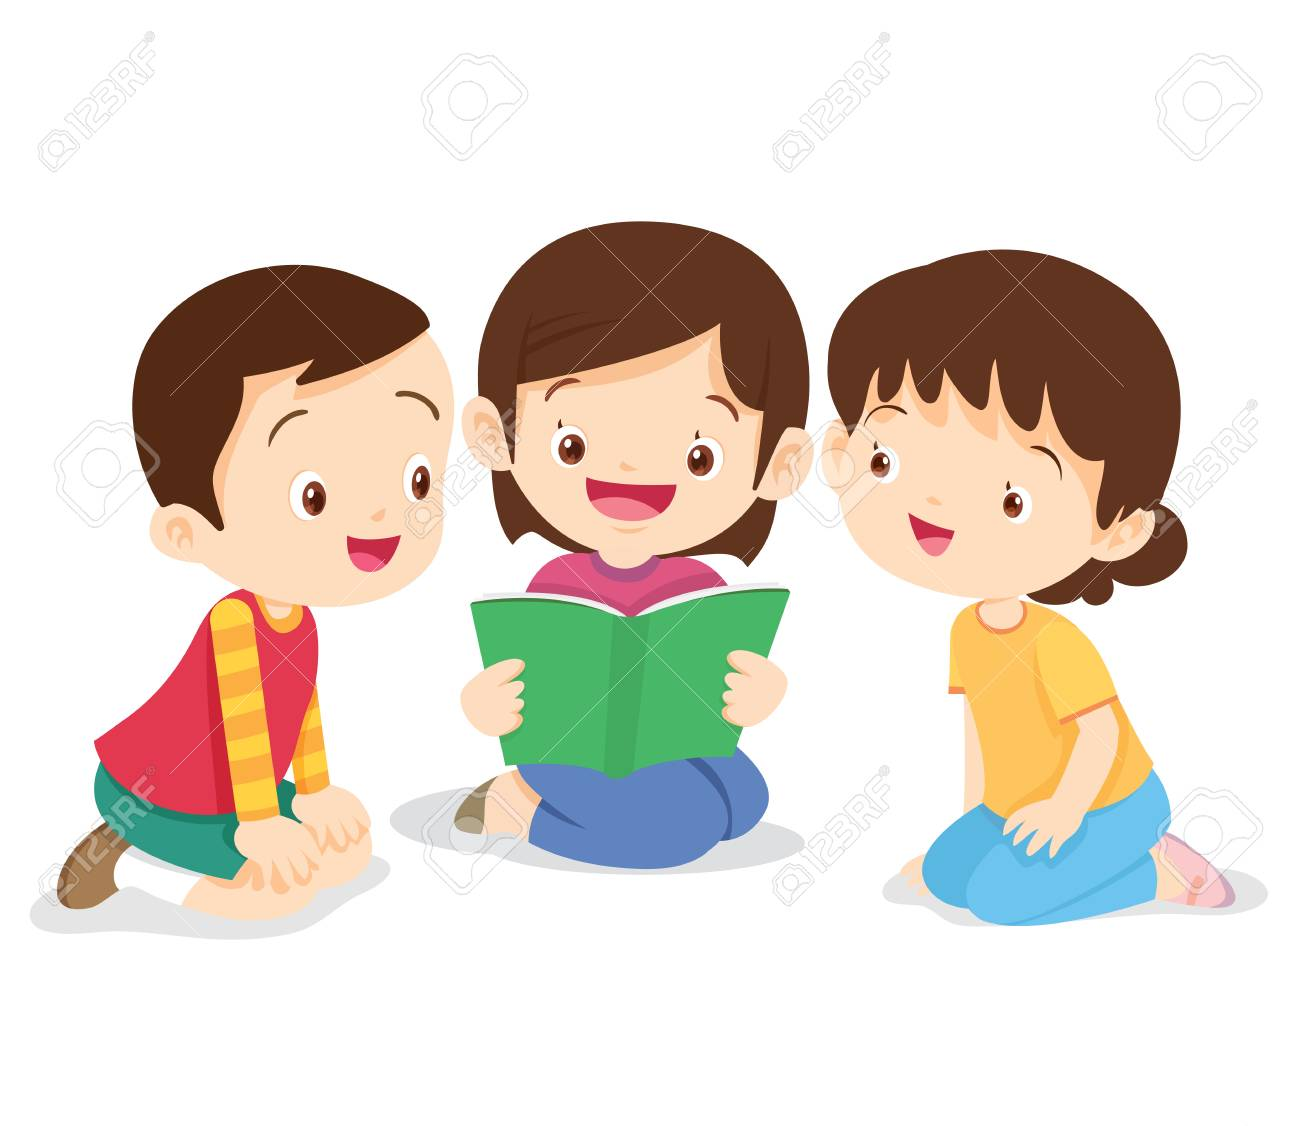 kids reading book, boy and girl sit and read book. children listen